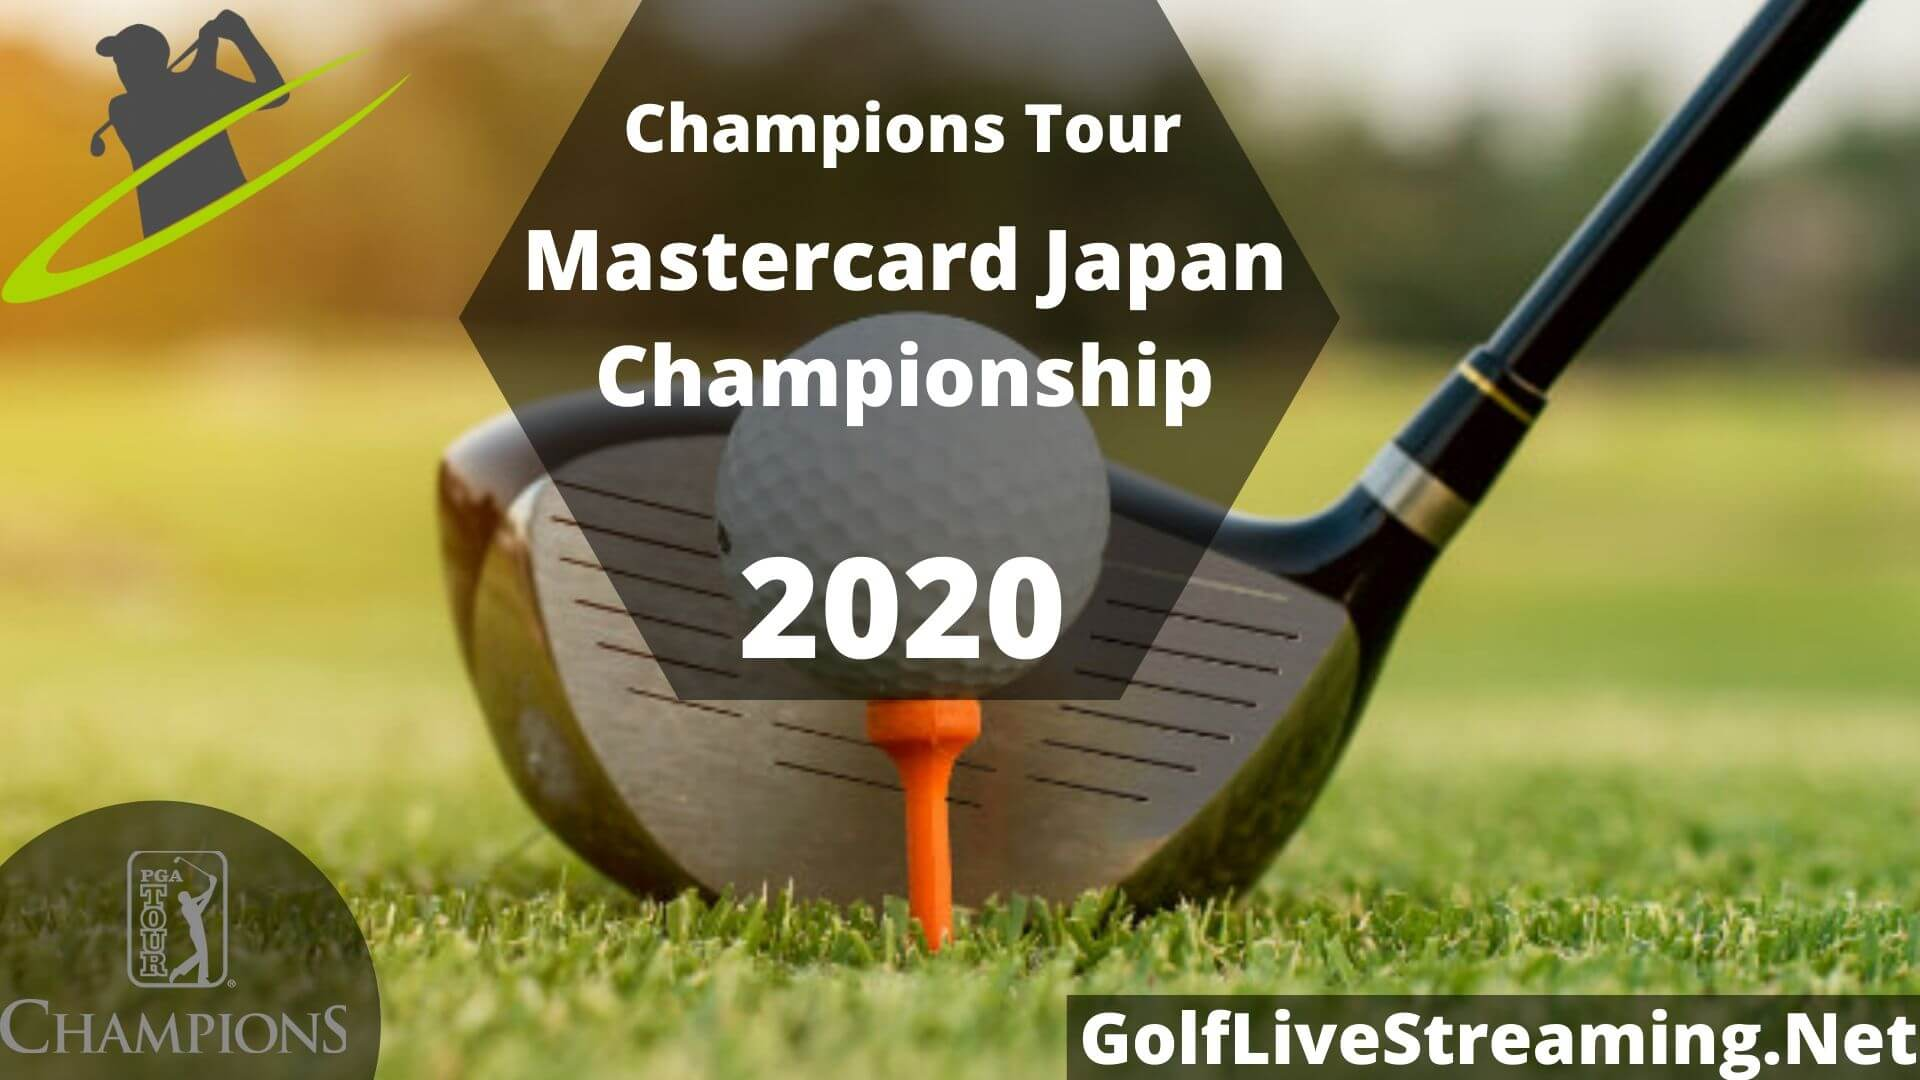 Mastercard Japan Championship Live Stream 2020 | Champions Tour Round 1